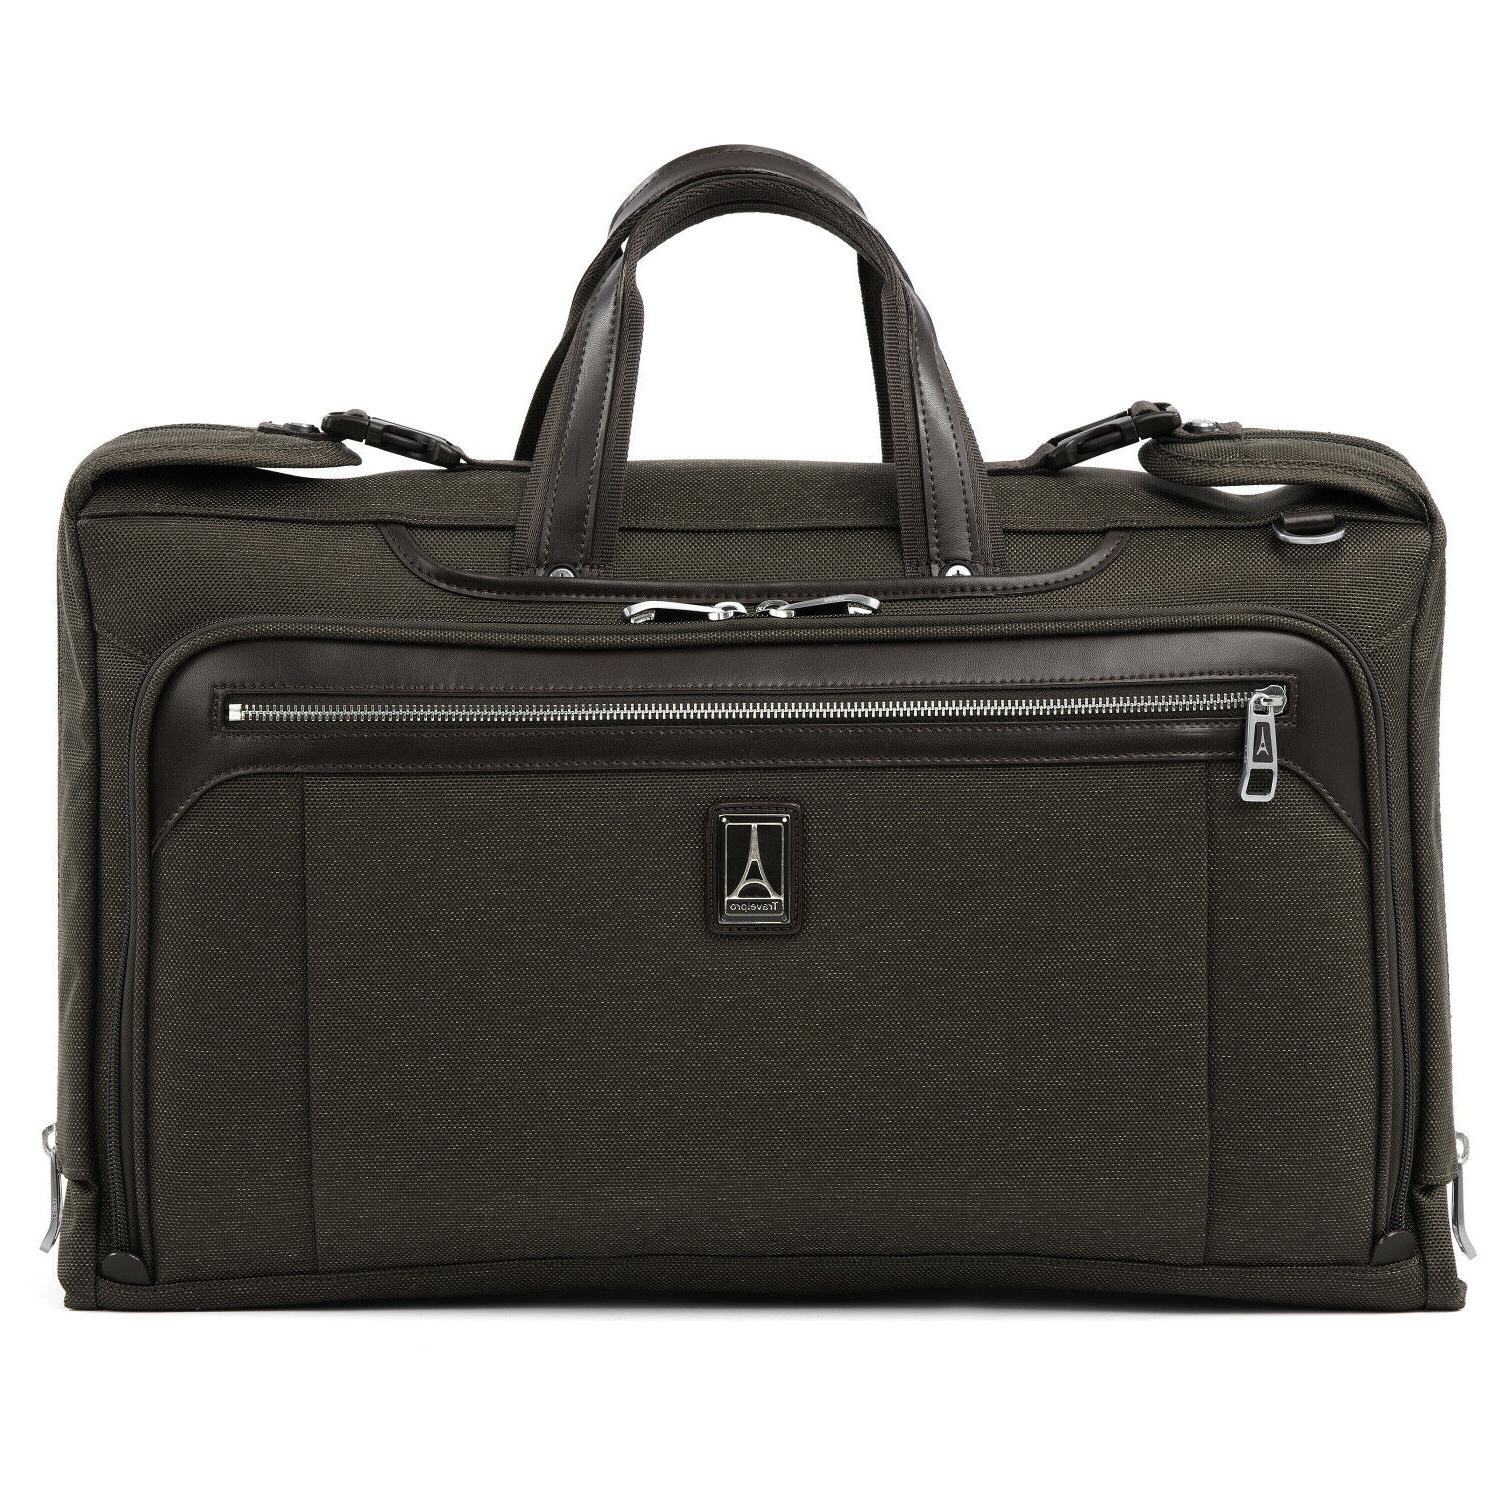 Travelpro Platinum® Carry-On Bag 4091848